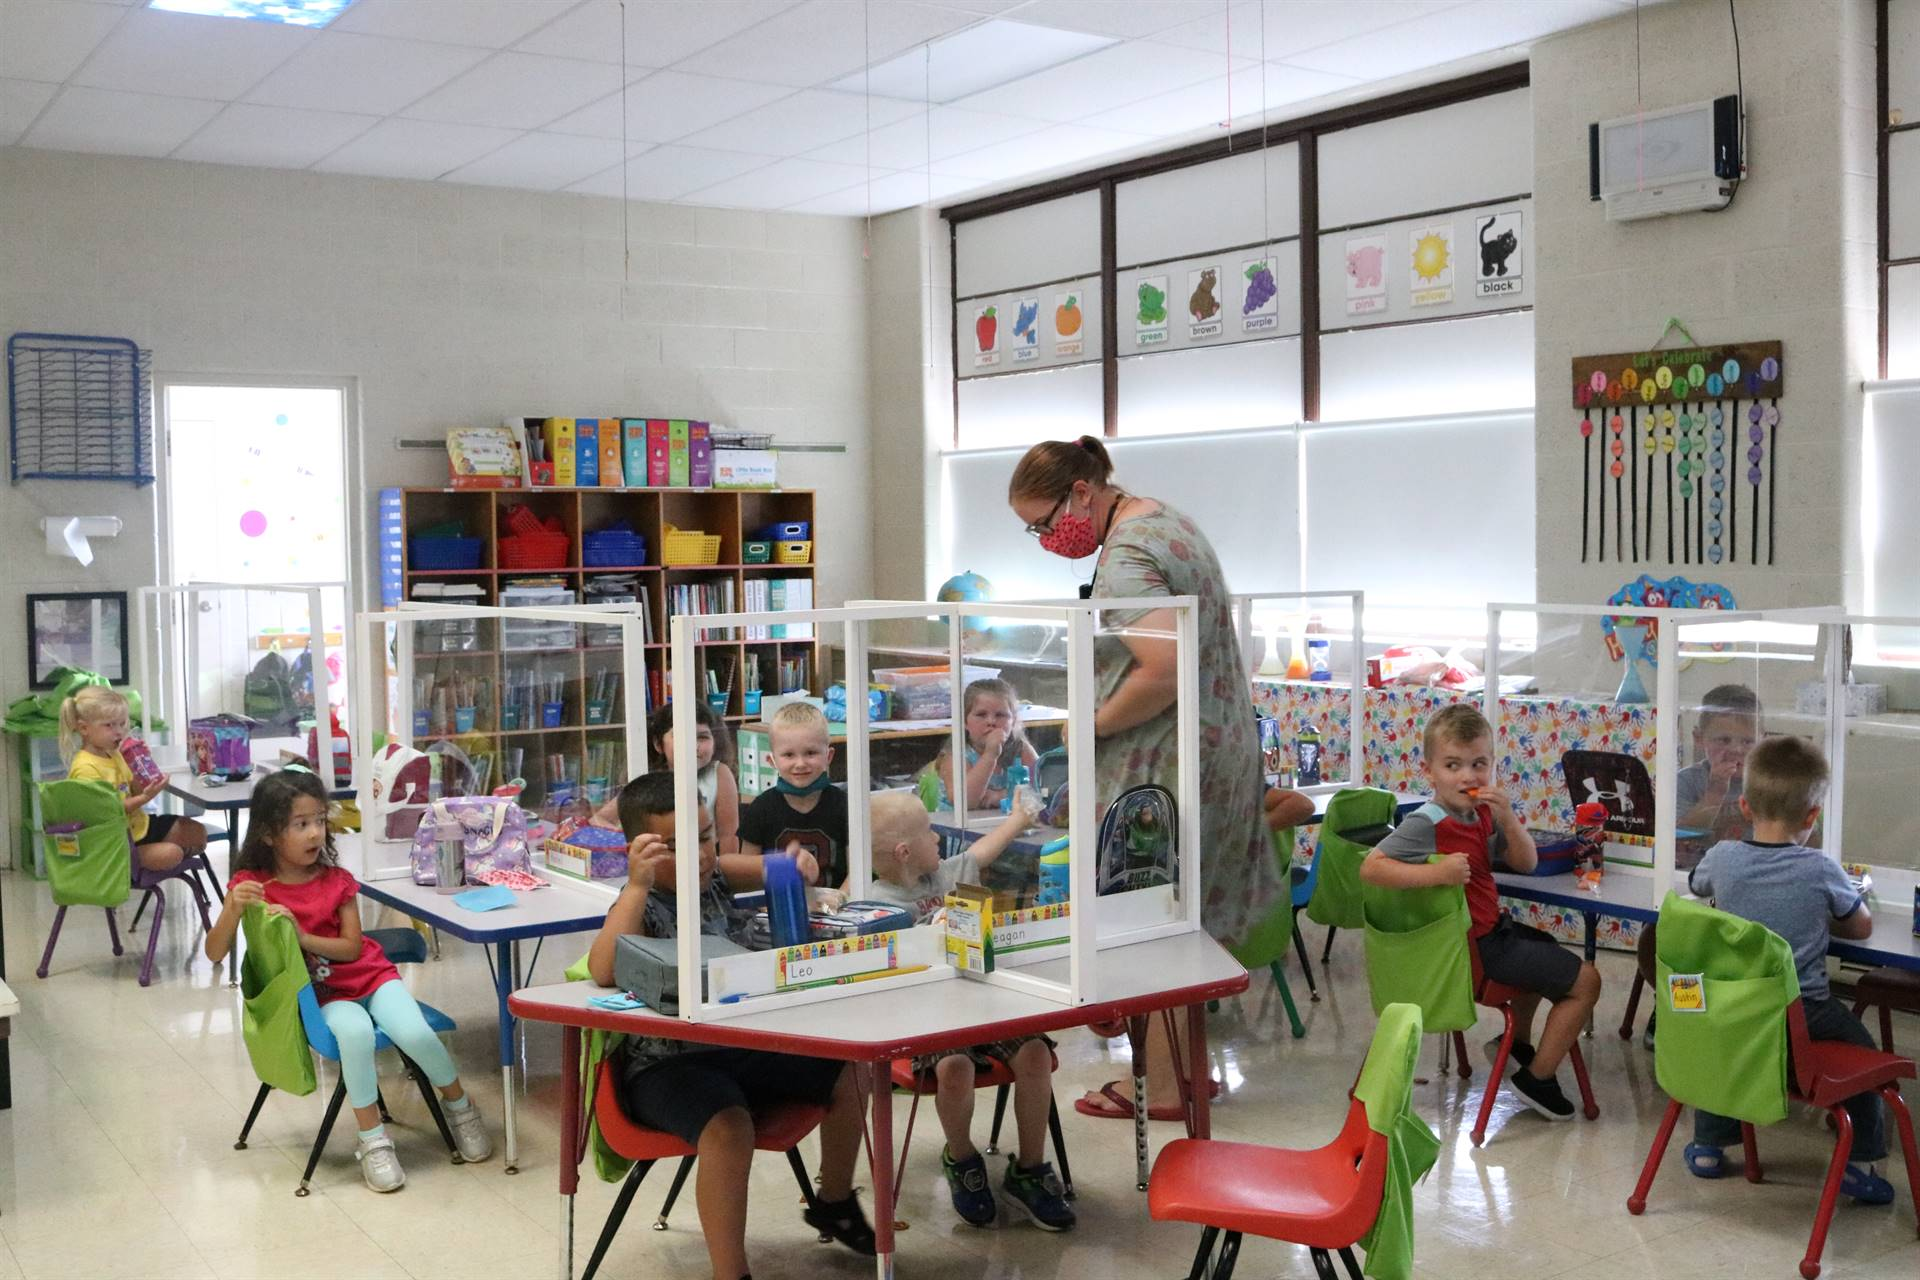 teacher with kids sitting at tables